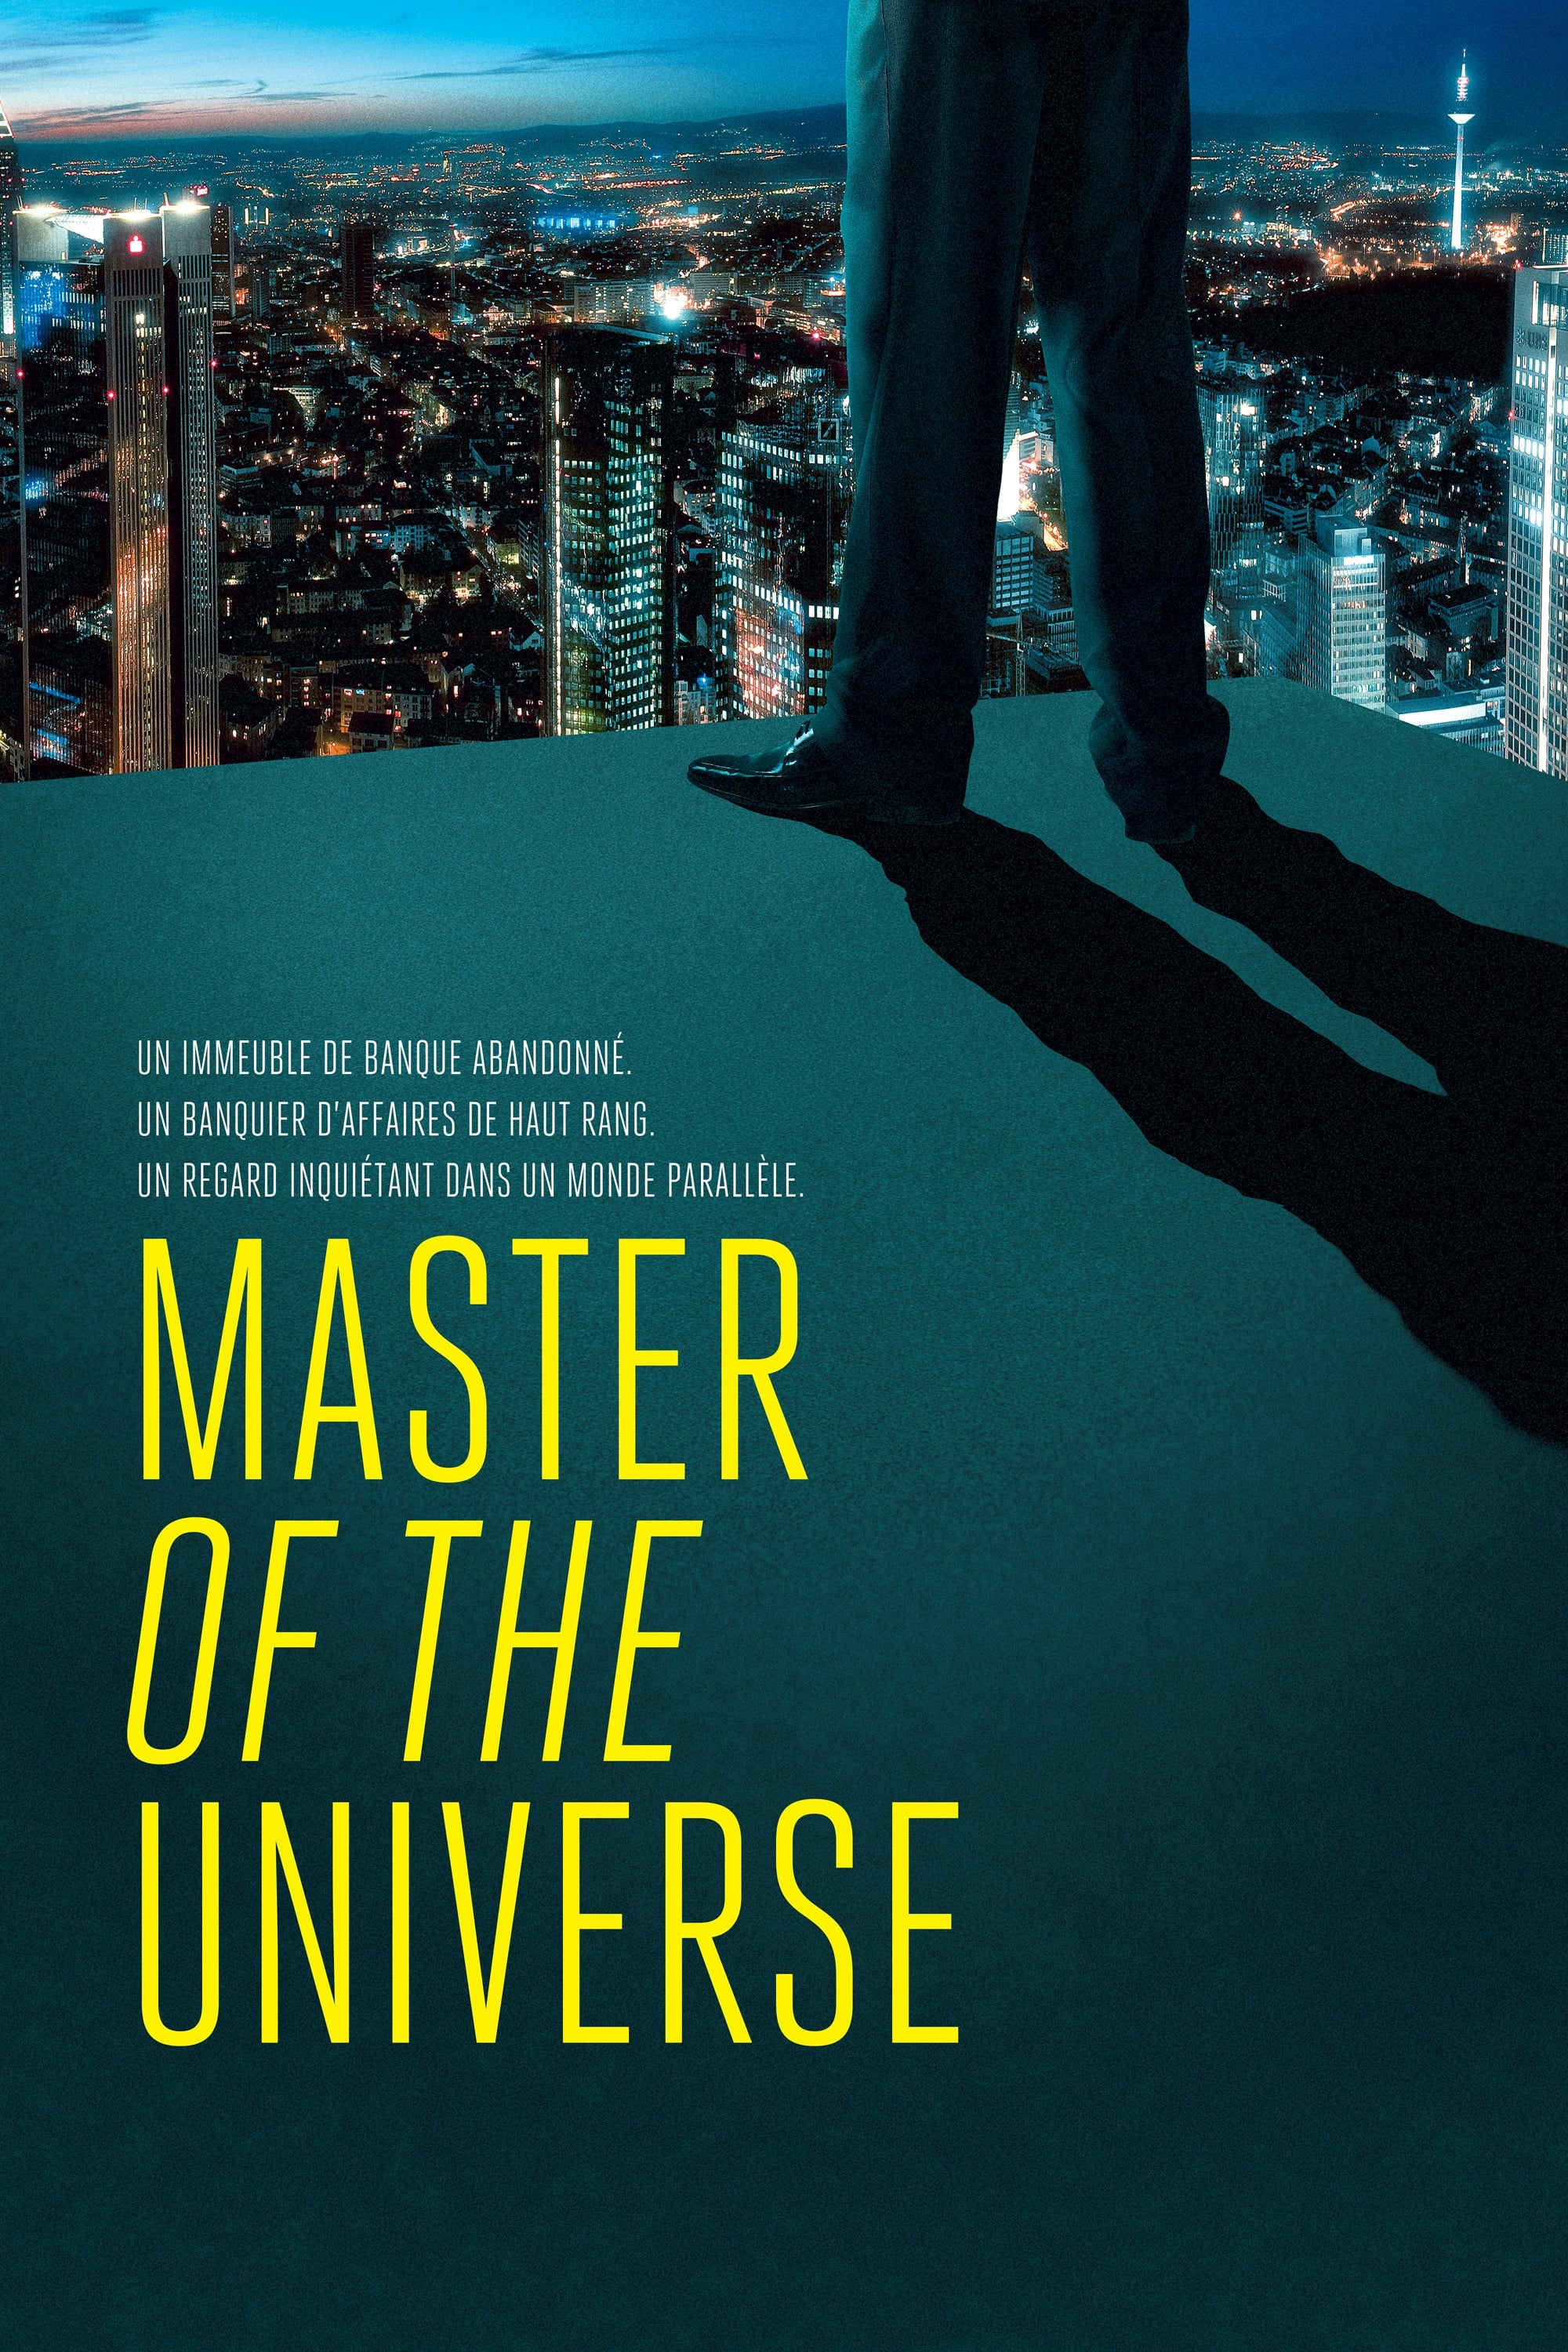 Master of the Universe streaming sur zone telechargement